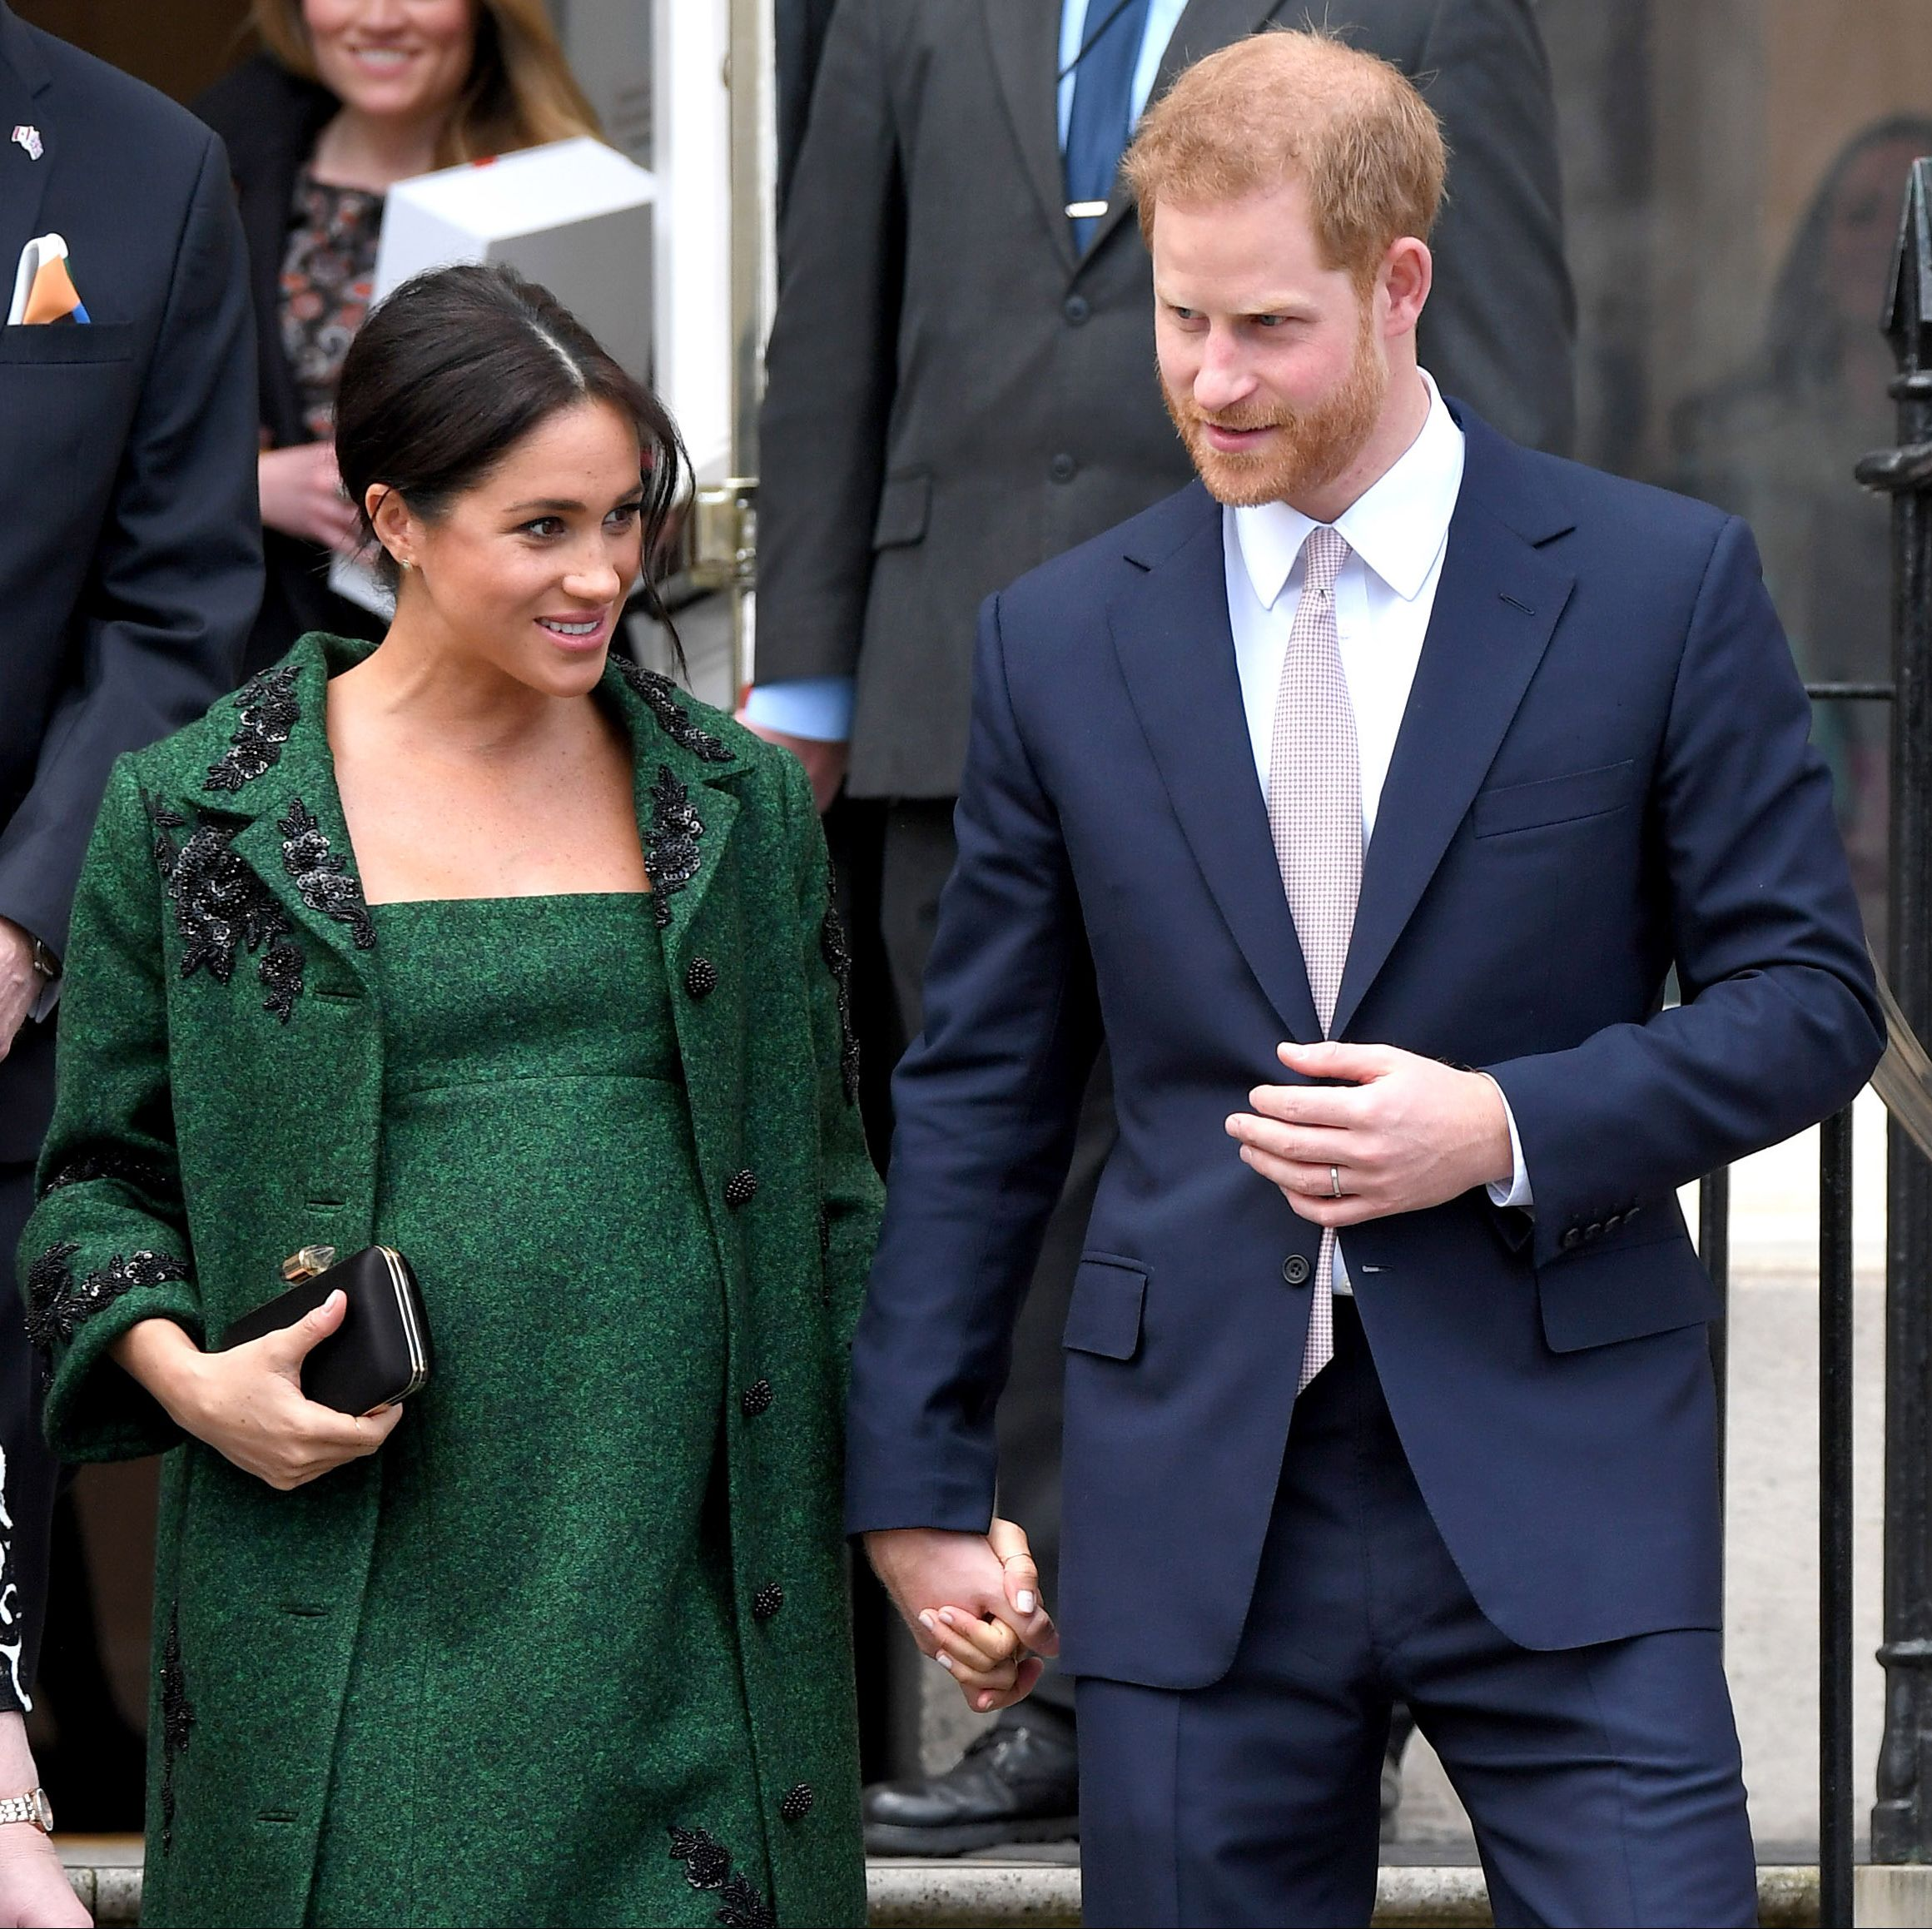 Meghan Markle and Prince Harry Have Given Up Their Cotswolds Country Home Ahead of Their Baby's Birth